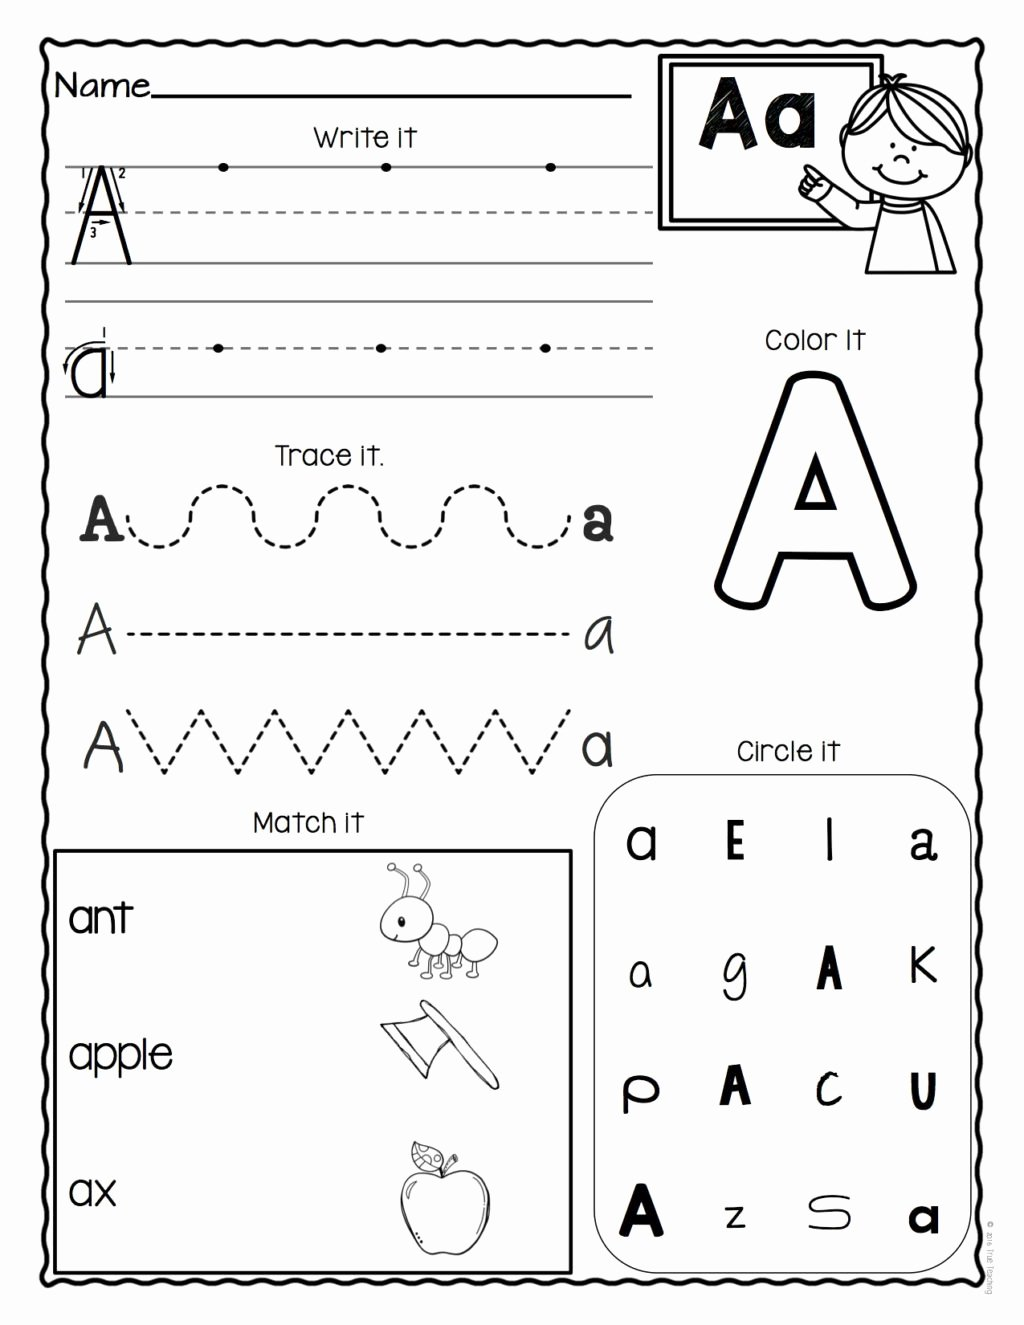 Trace the Lines Worksheets for Preschoolers Lovely Worksheet Letter Worksheet for Preschoolers Printable